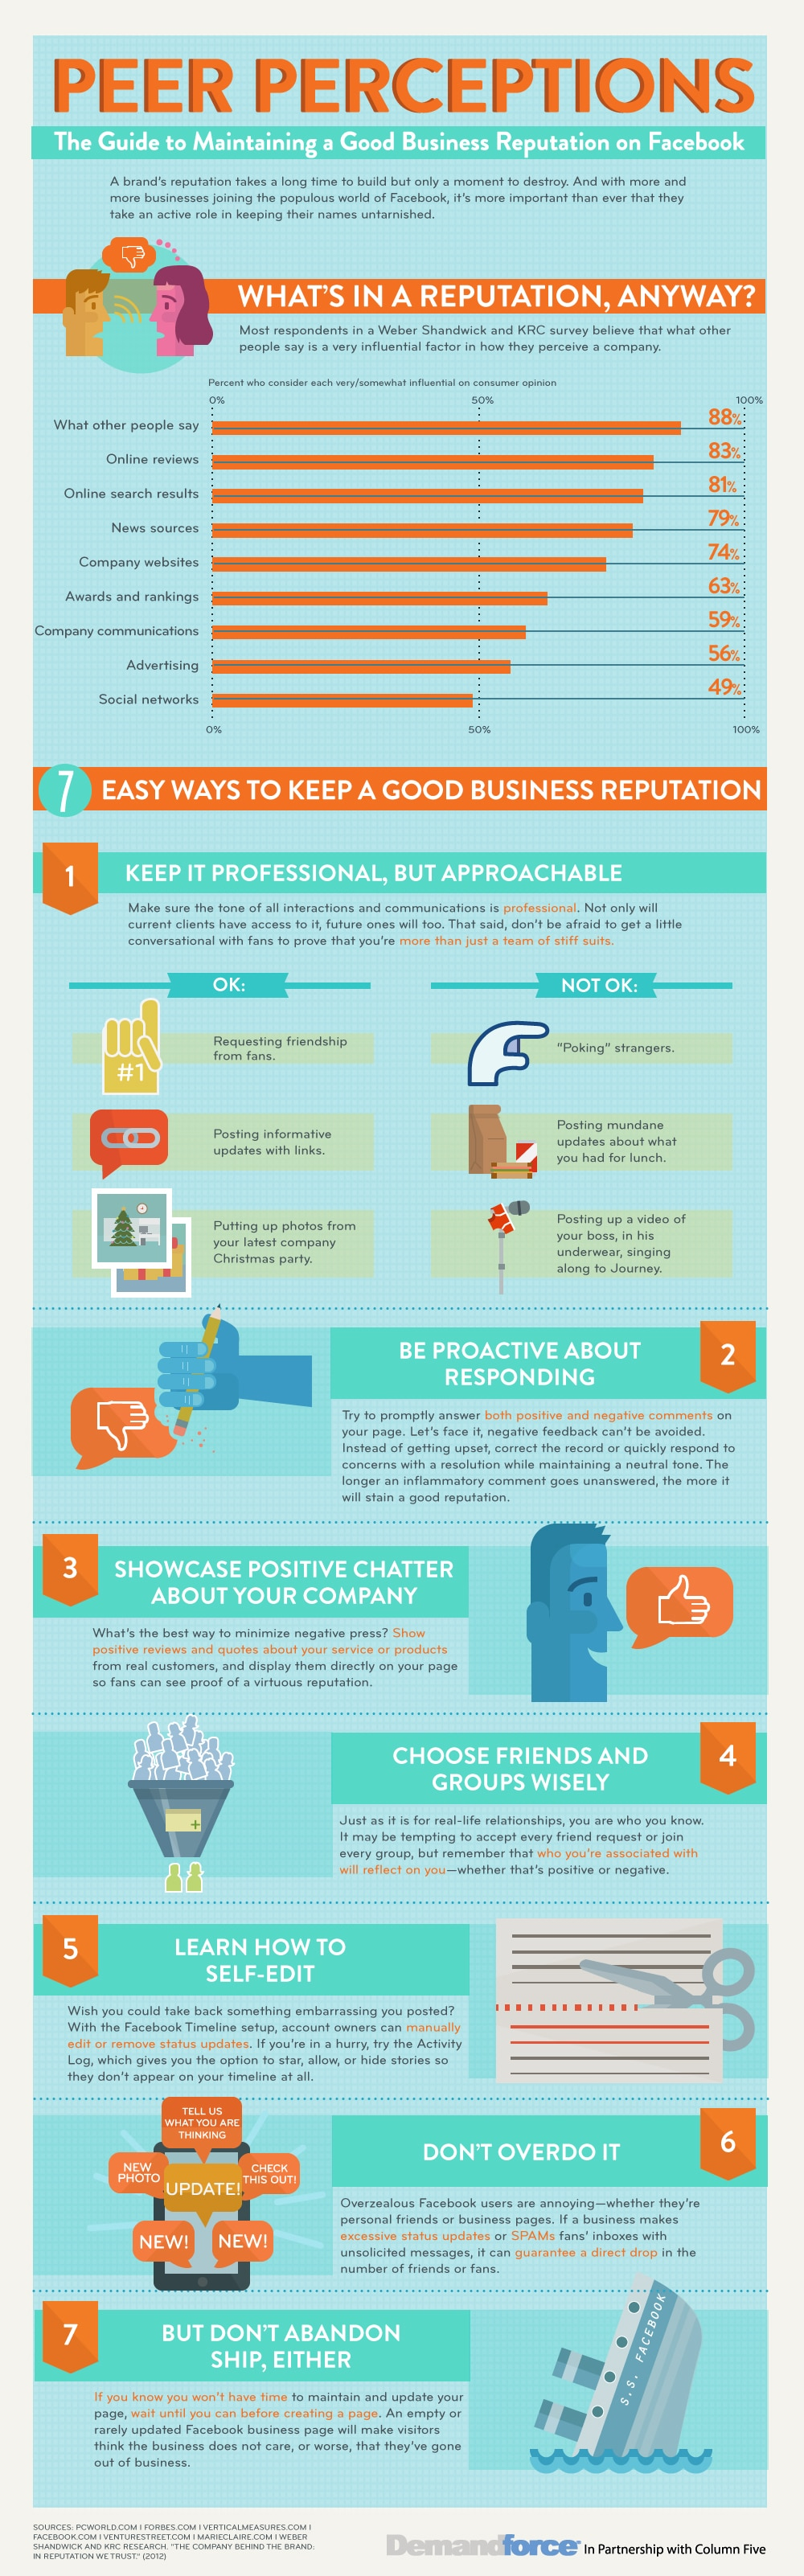 Business-Reputation-On-Facebook-Infographic